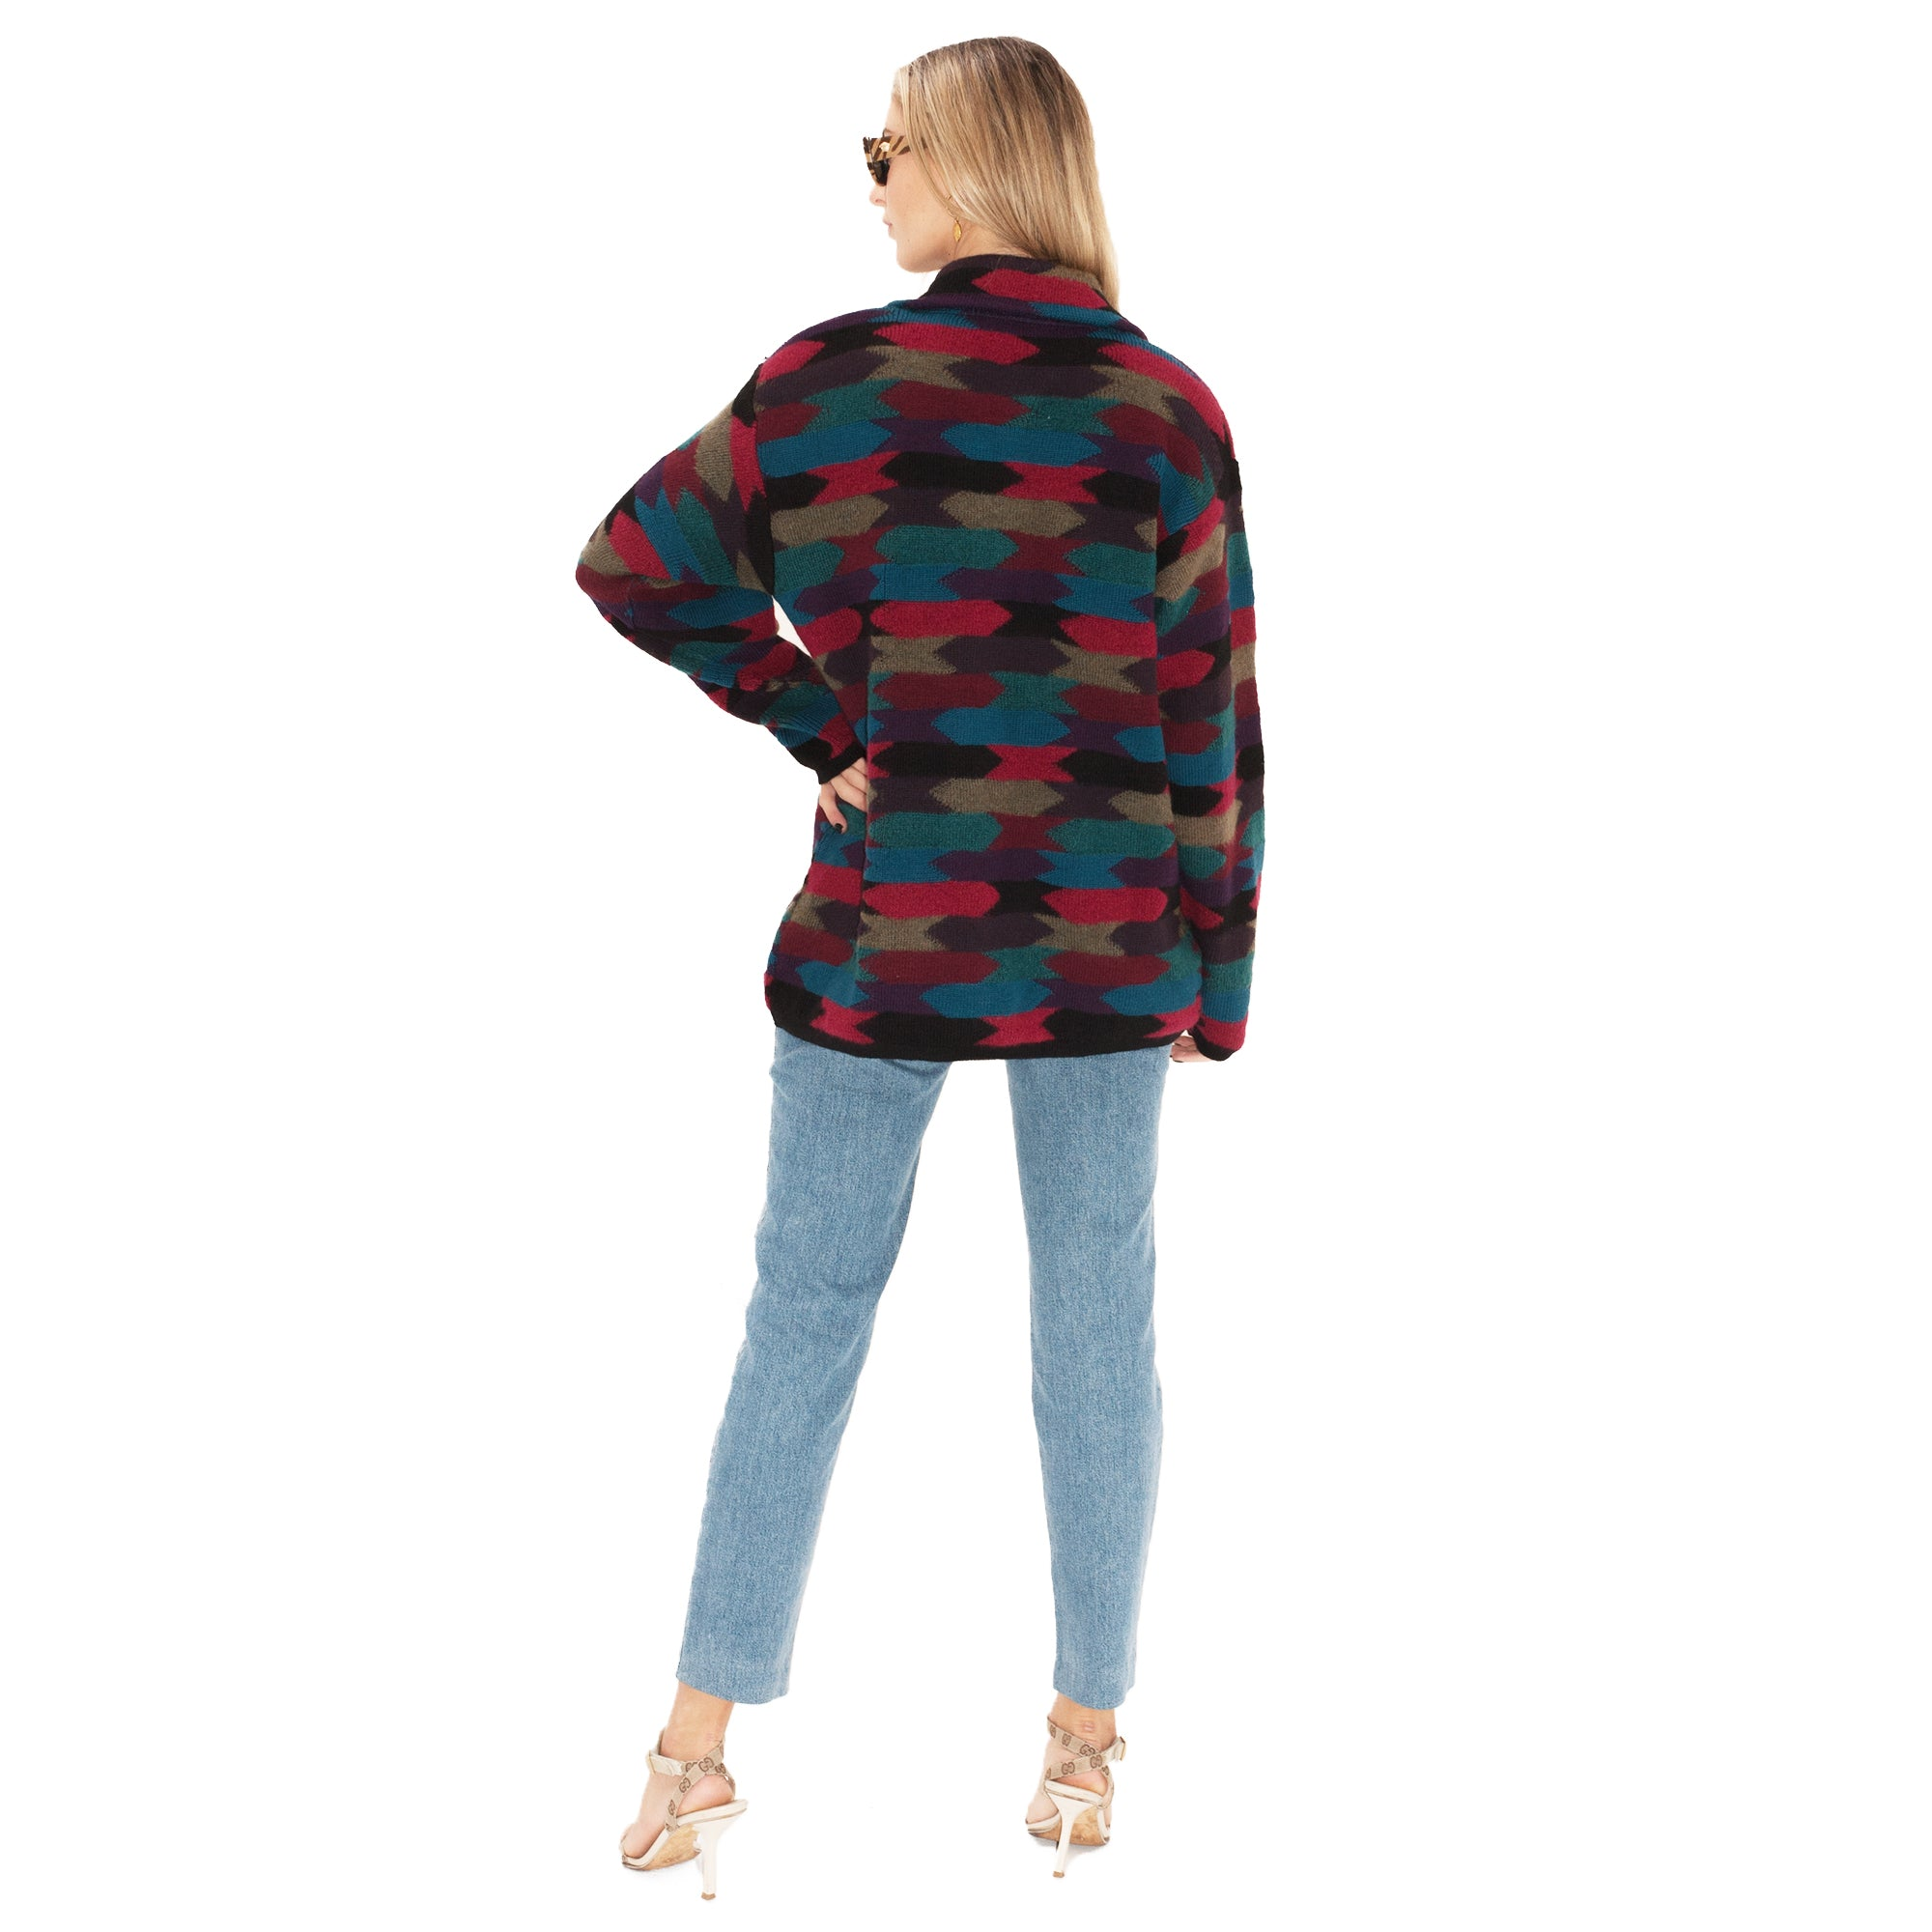 Missoni Knit Overshirt (Multi) UK 8-12